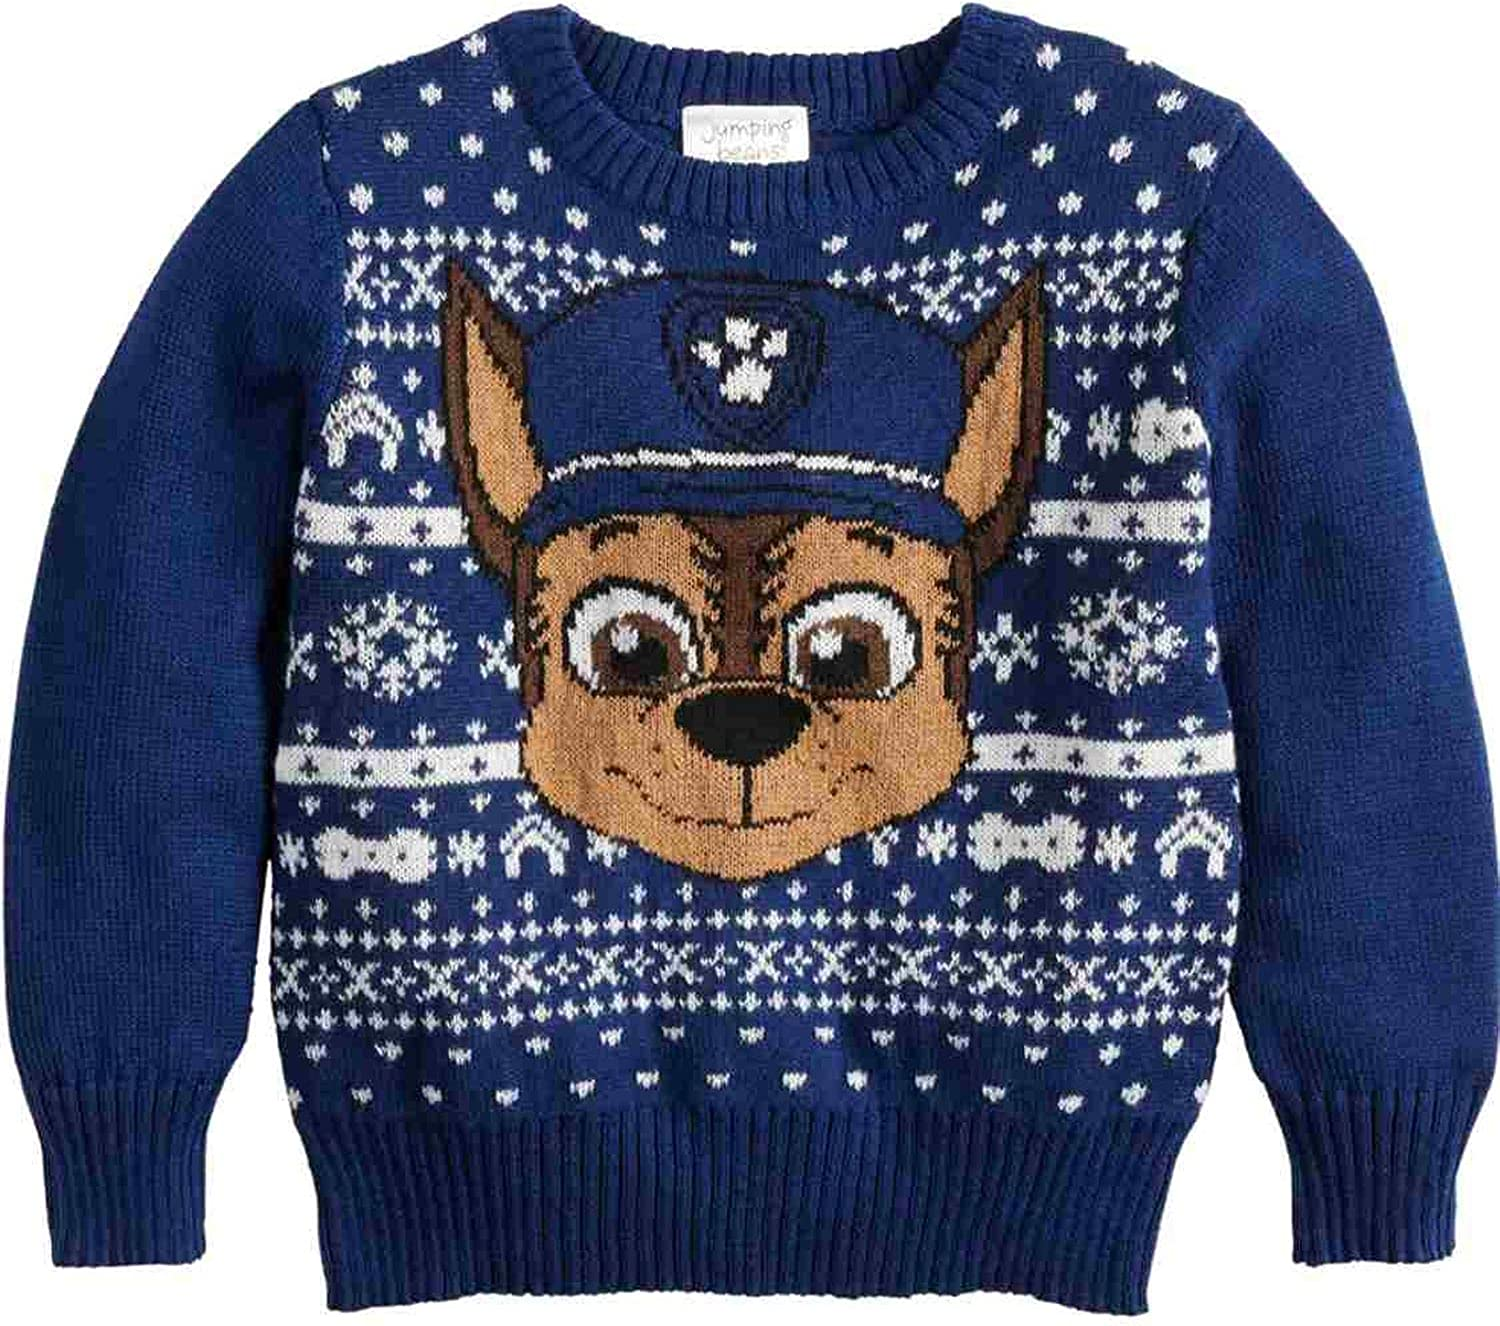 Toddler Boys Paw Patrol Holiday Pullover Sweater - Chase or Marshall (Blue Chase, 2T)